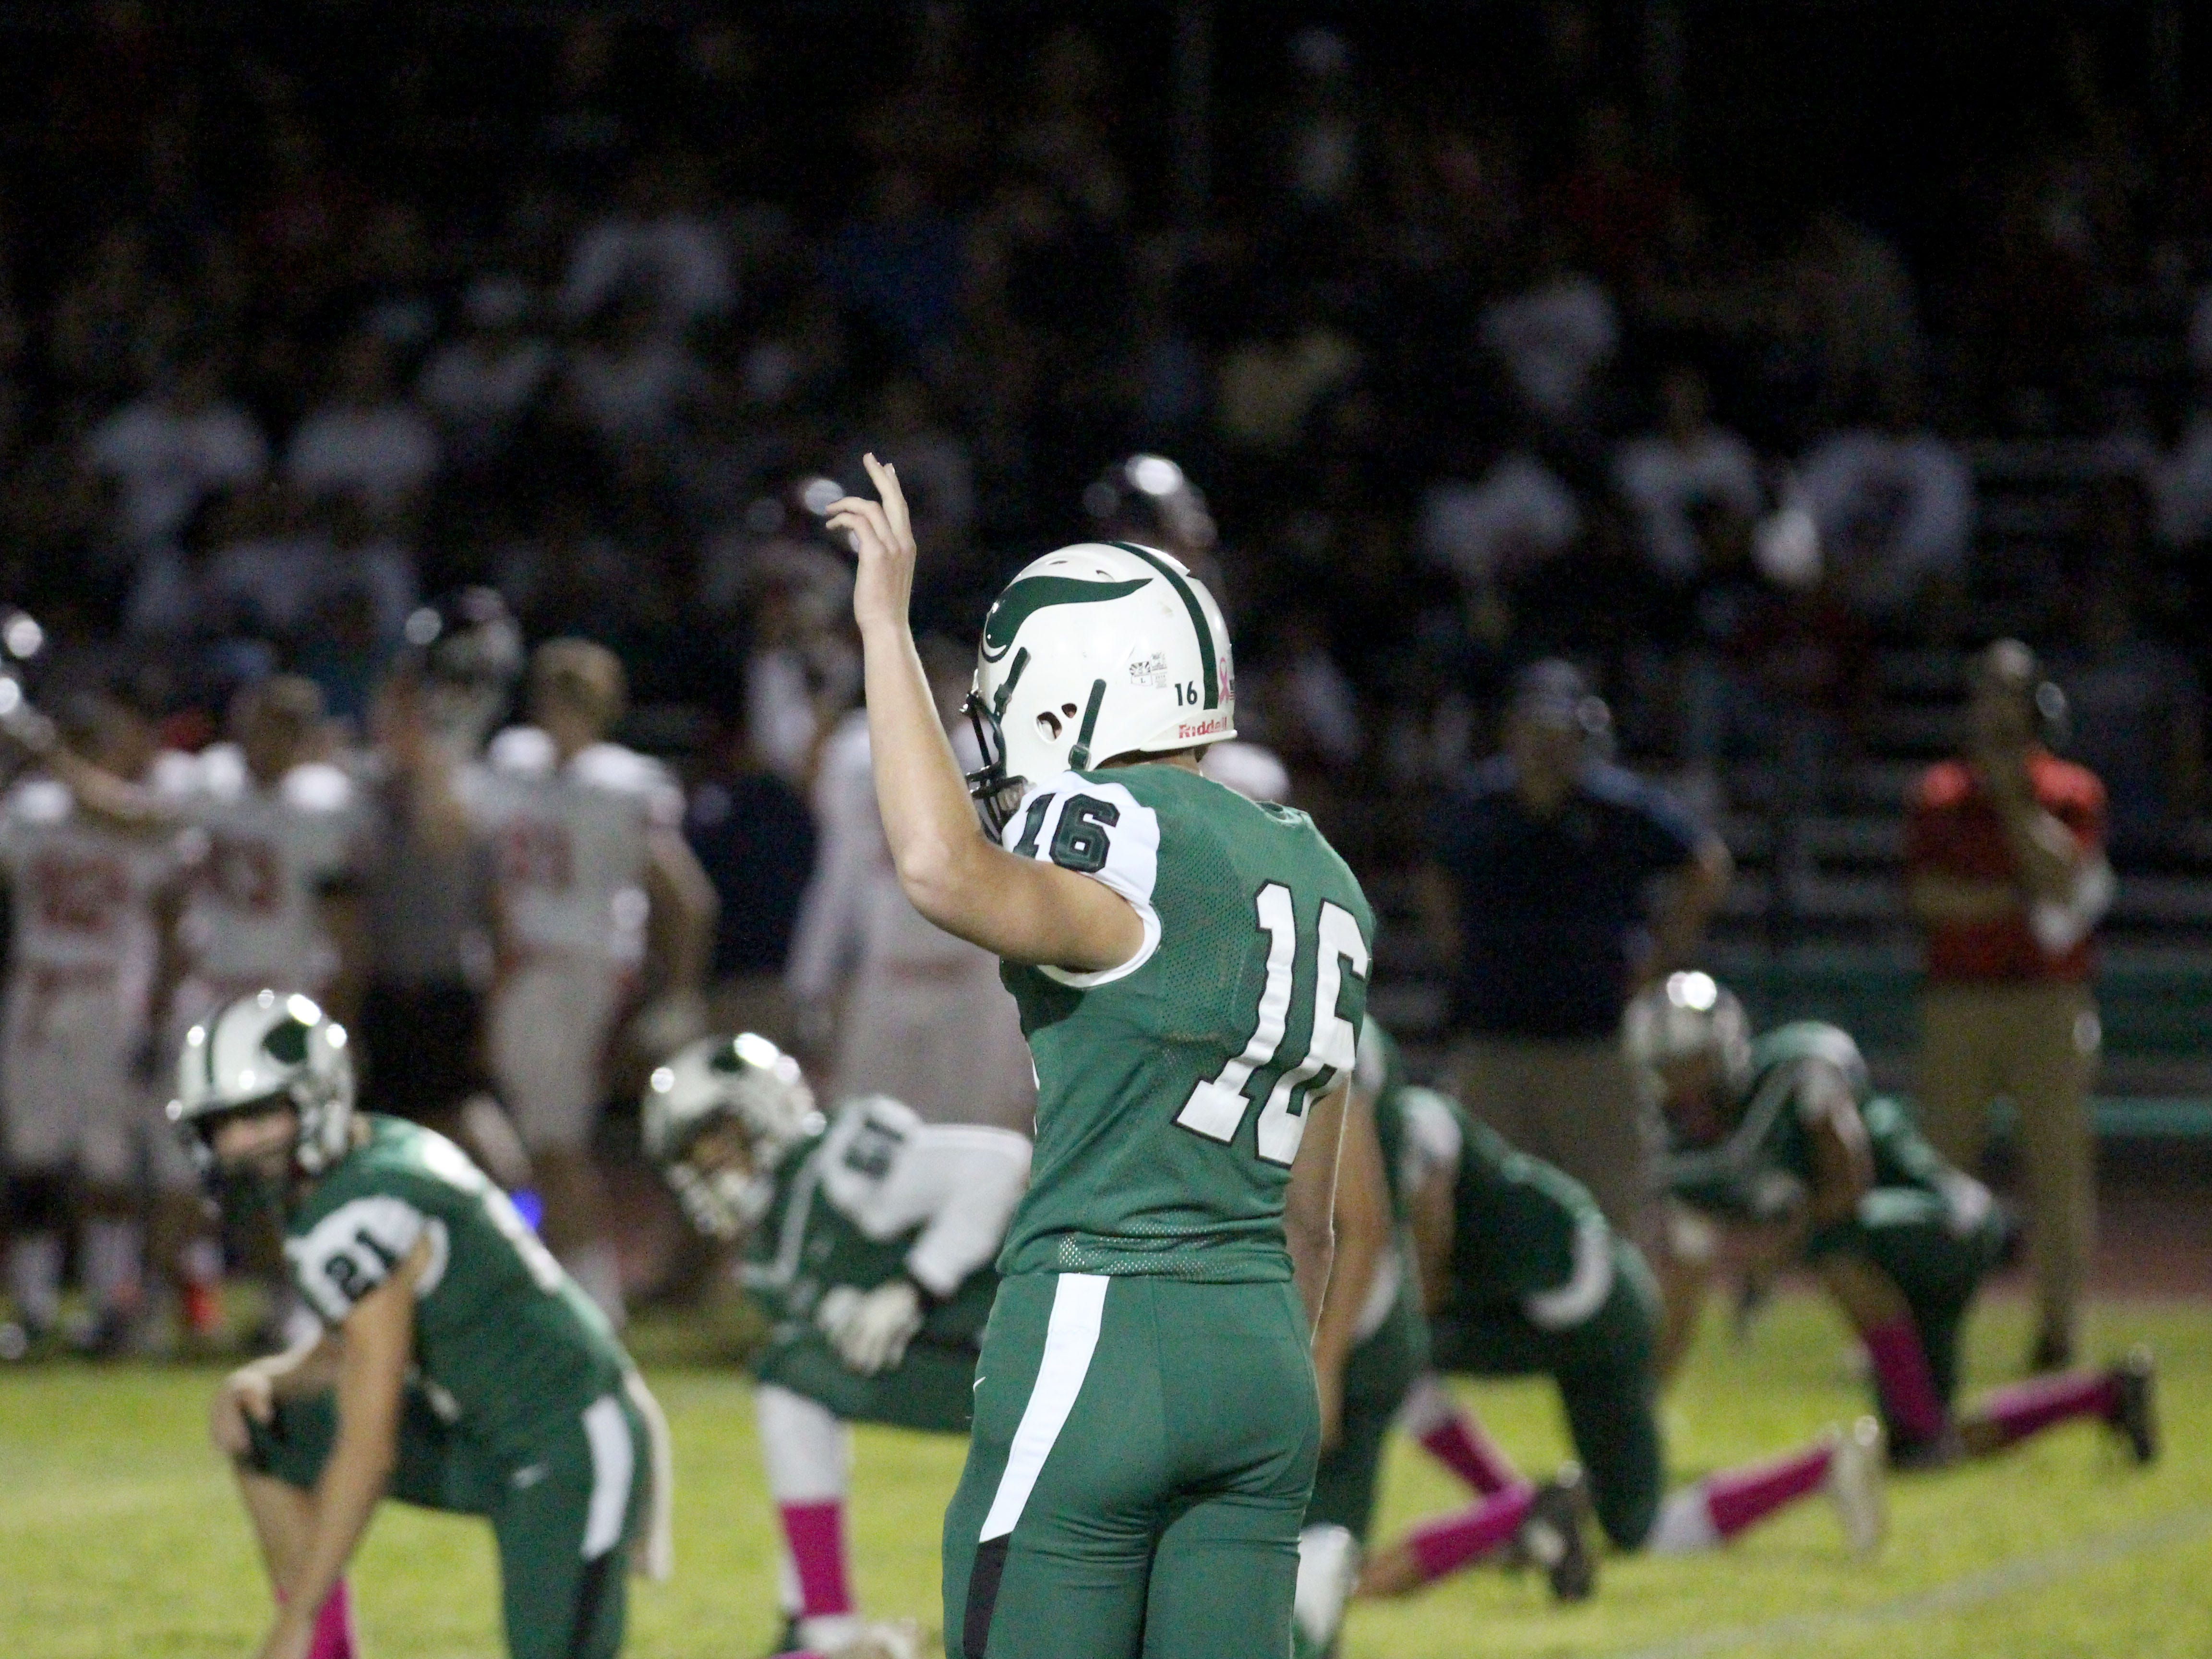 Sunnyslope kicker Peter Seivert signals that he is about to kick it off against Centennial on Friday night at Sunnyslope High School on Oct. 5, 2018